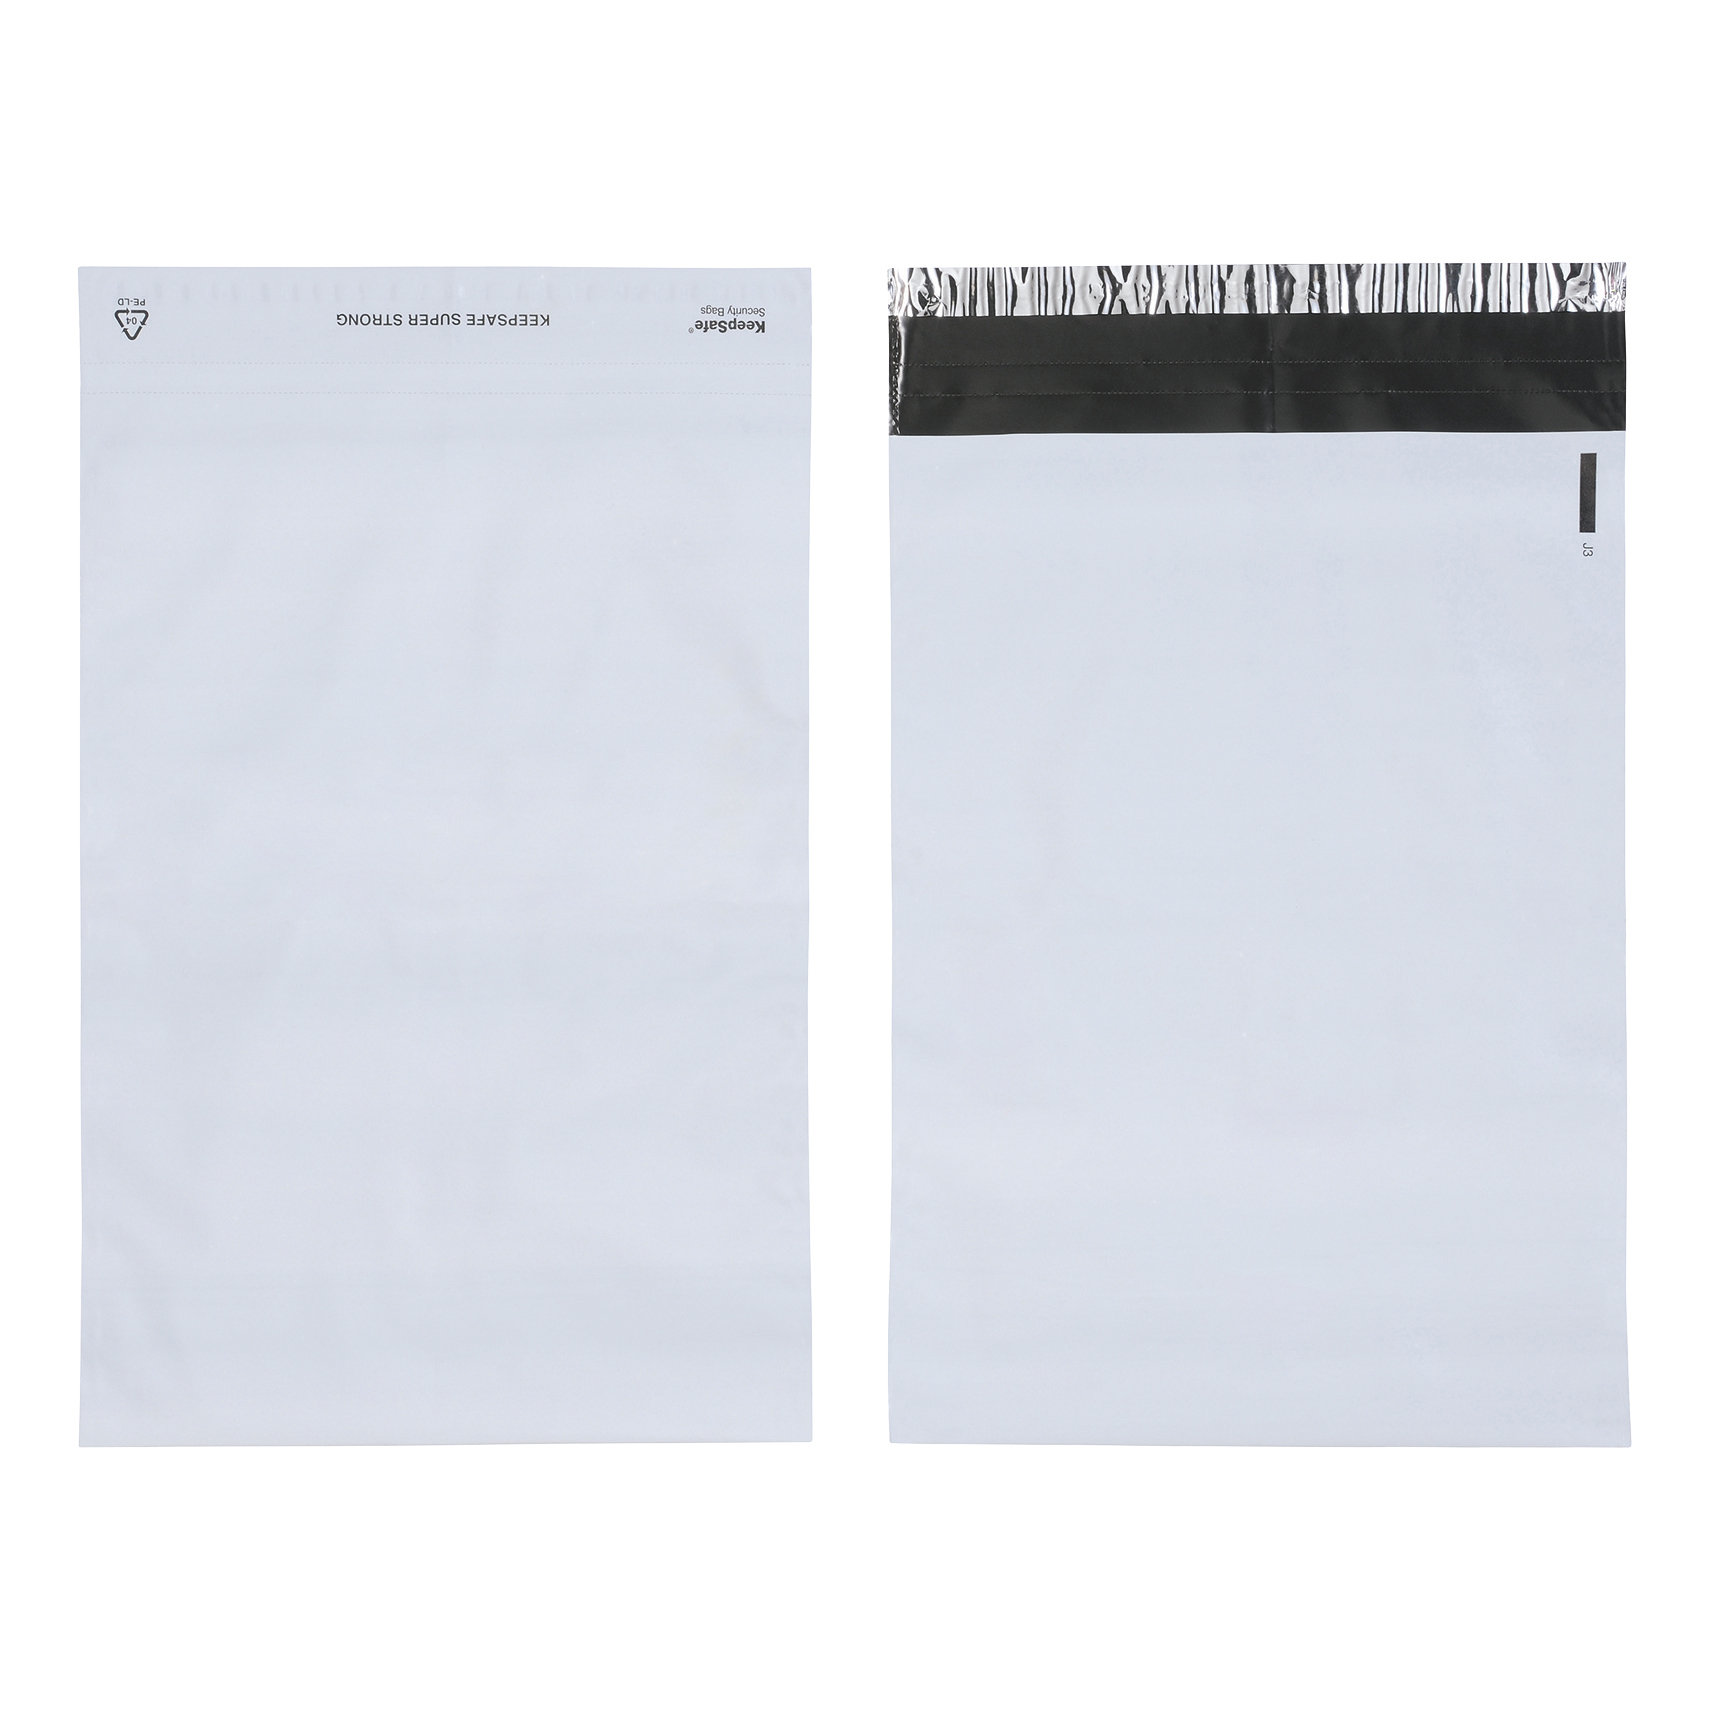 Keepsafe SuperStrong Envelope Polythene Opaque C4 W230xH320mm Peel & Seal Ref KSV-SS2 [Pack 100]